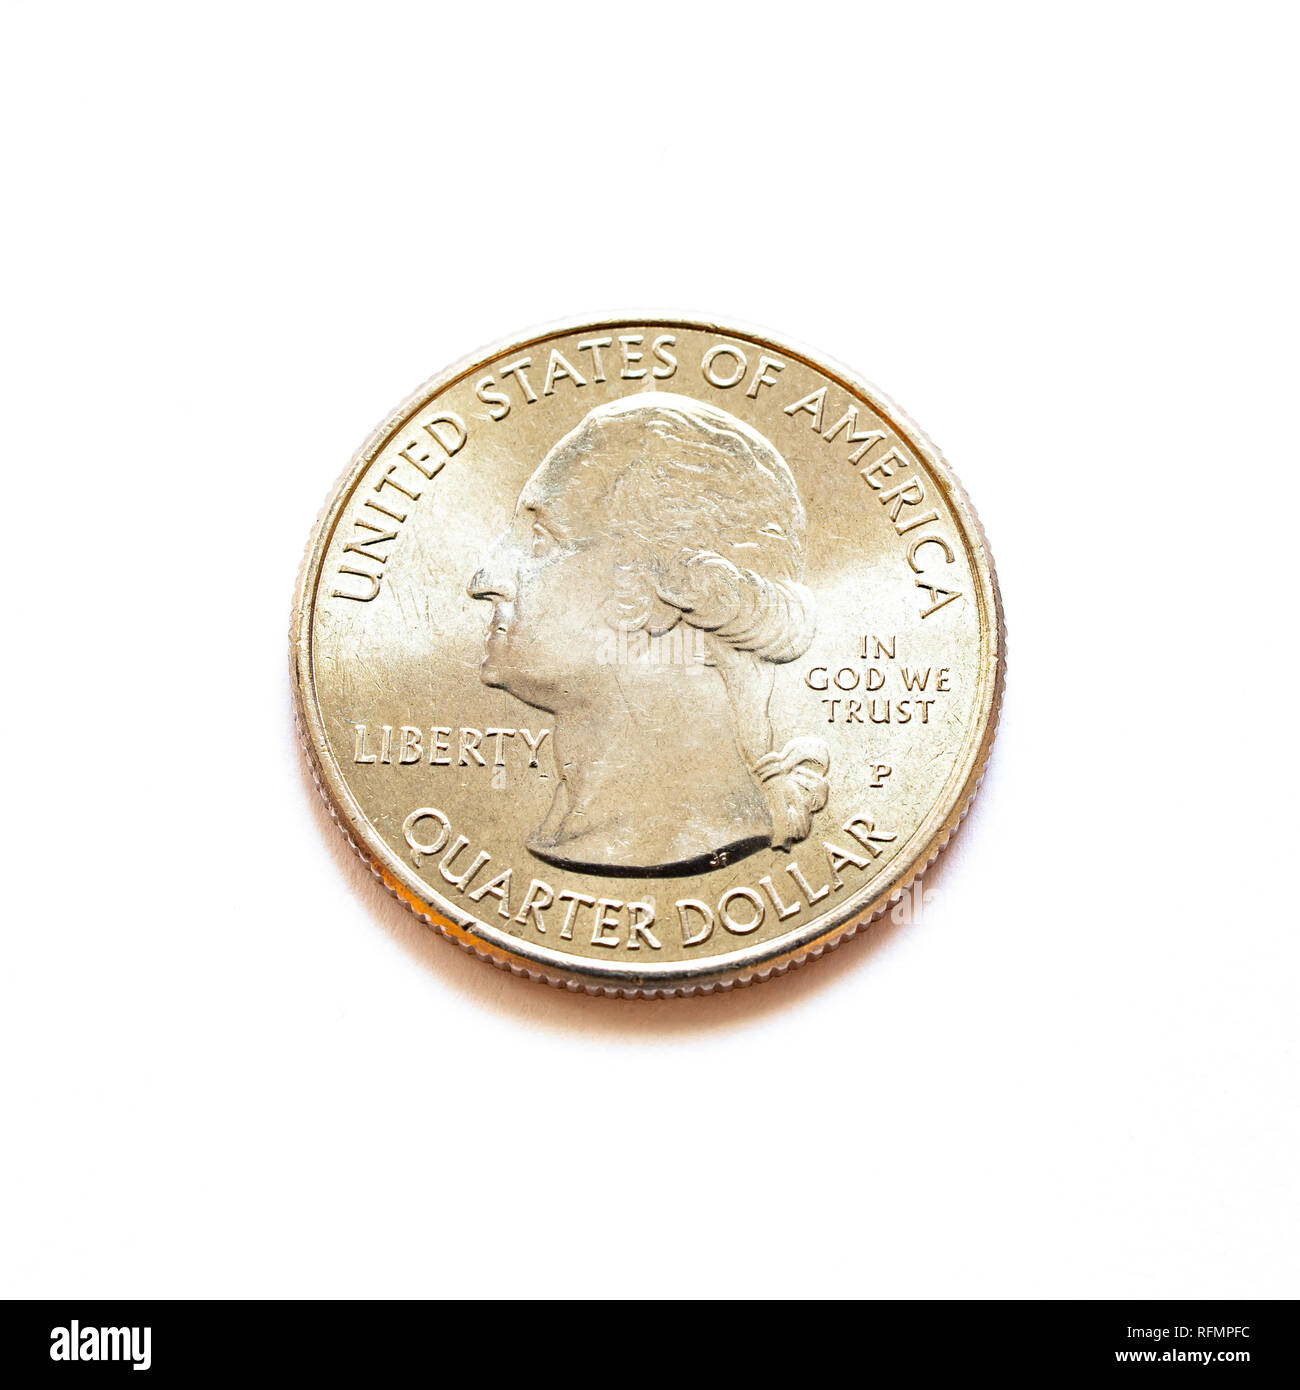 A shiny US quarter dollar coin isolated. - Stock Image